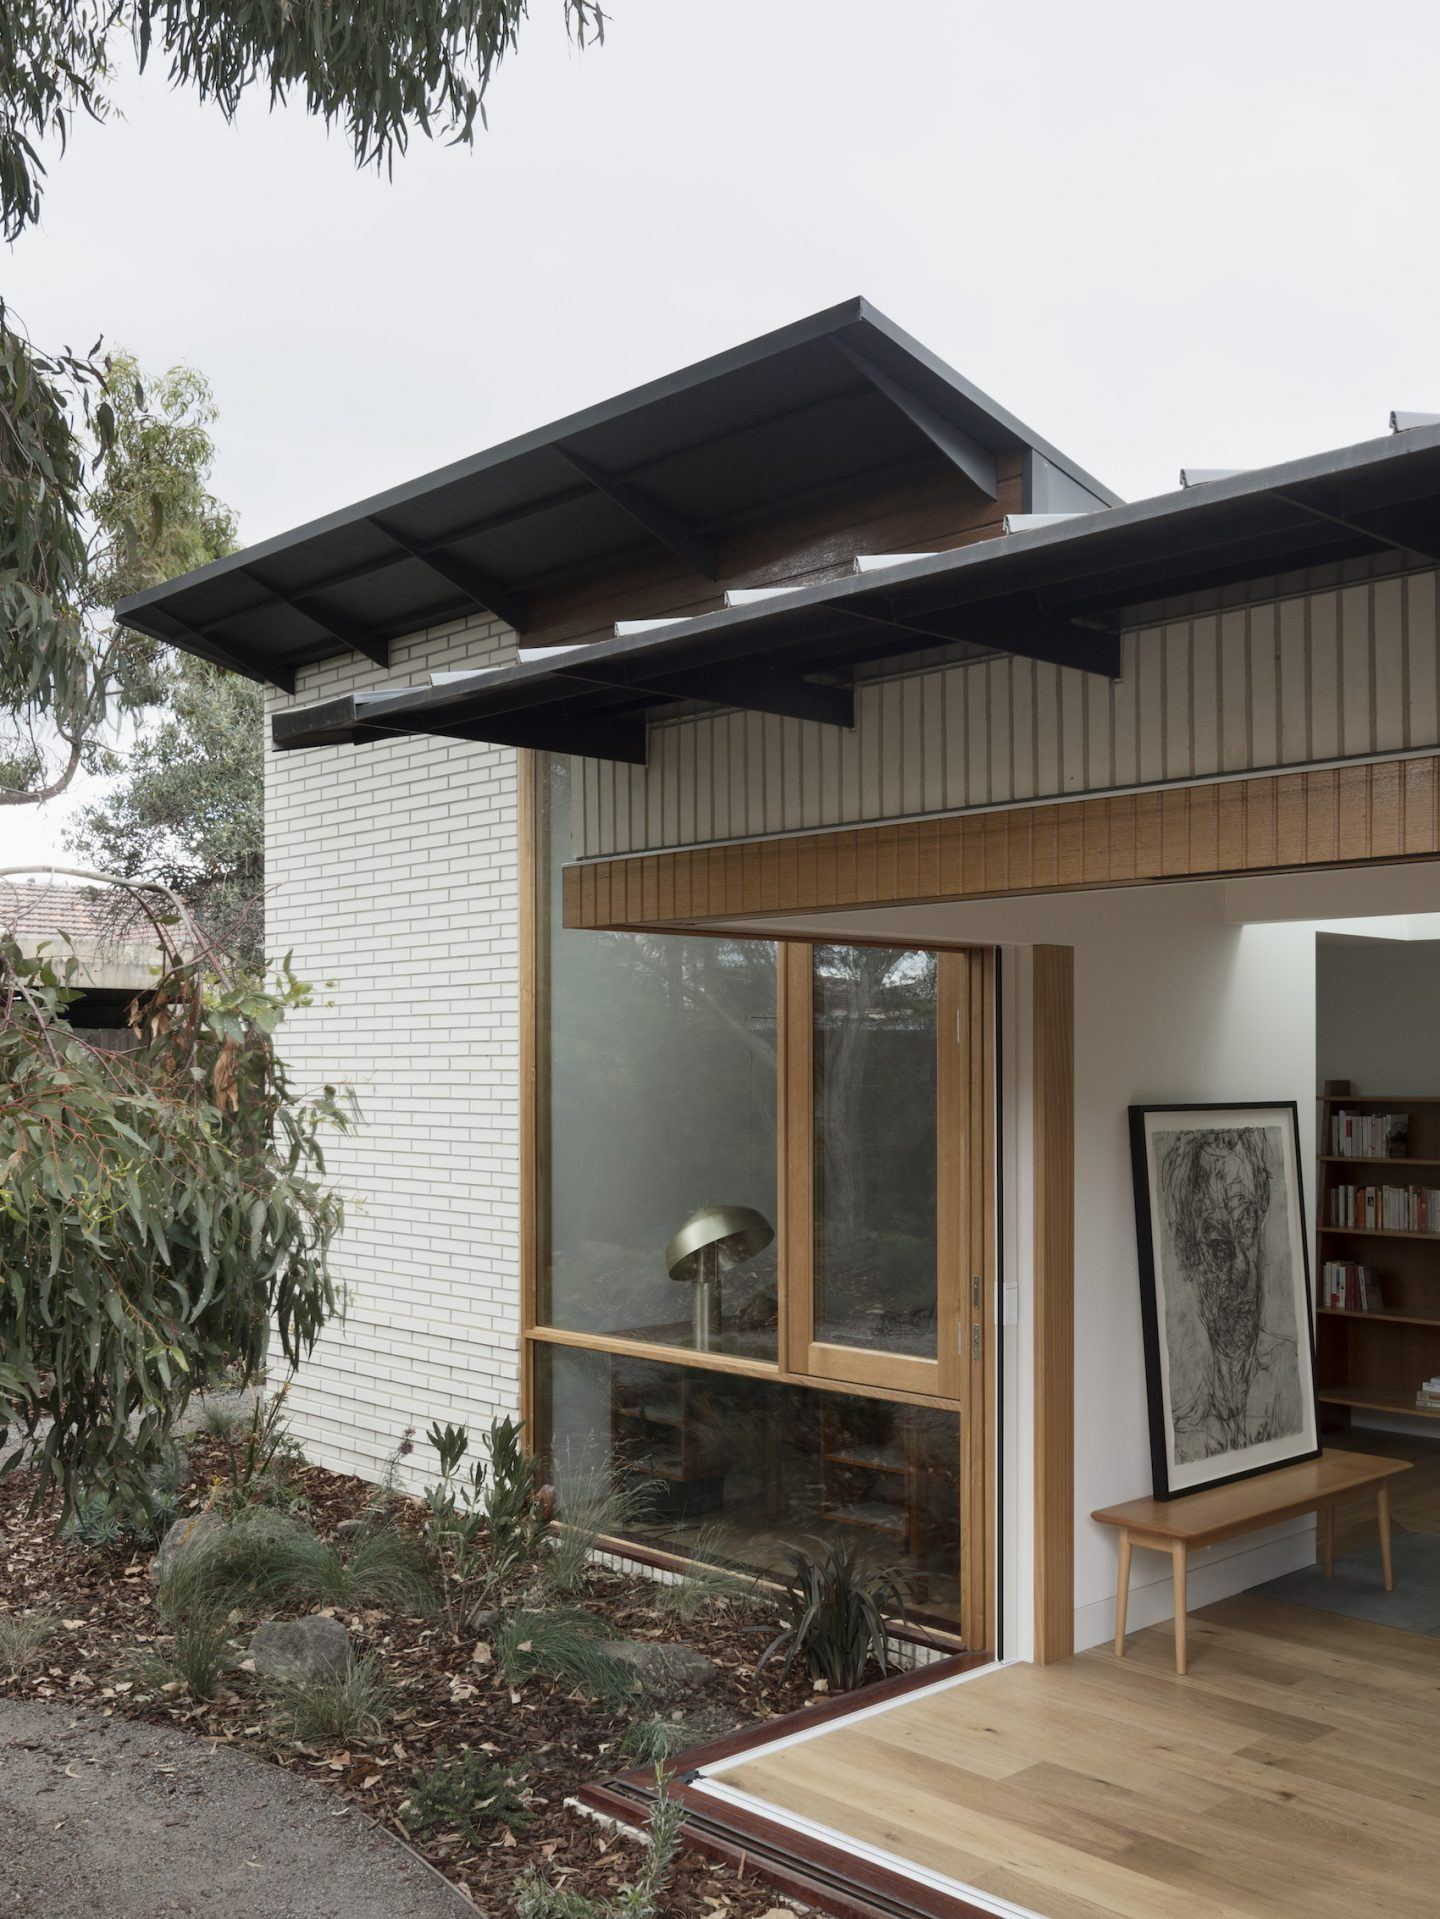 IGNANT-Architecture-Winwood-Mckenzie-Architecture-Brunswick-House-8